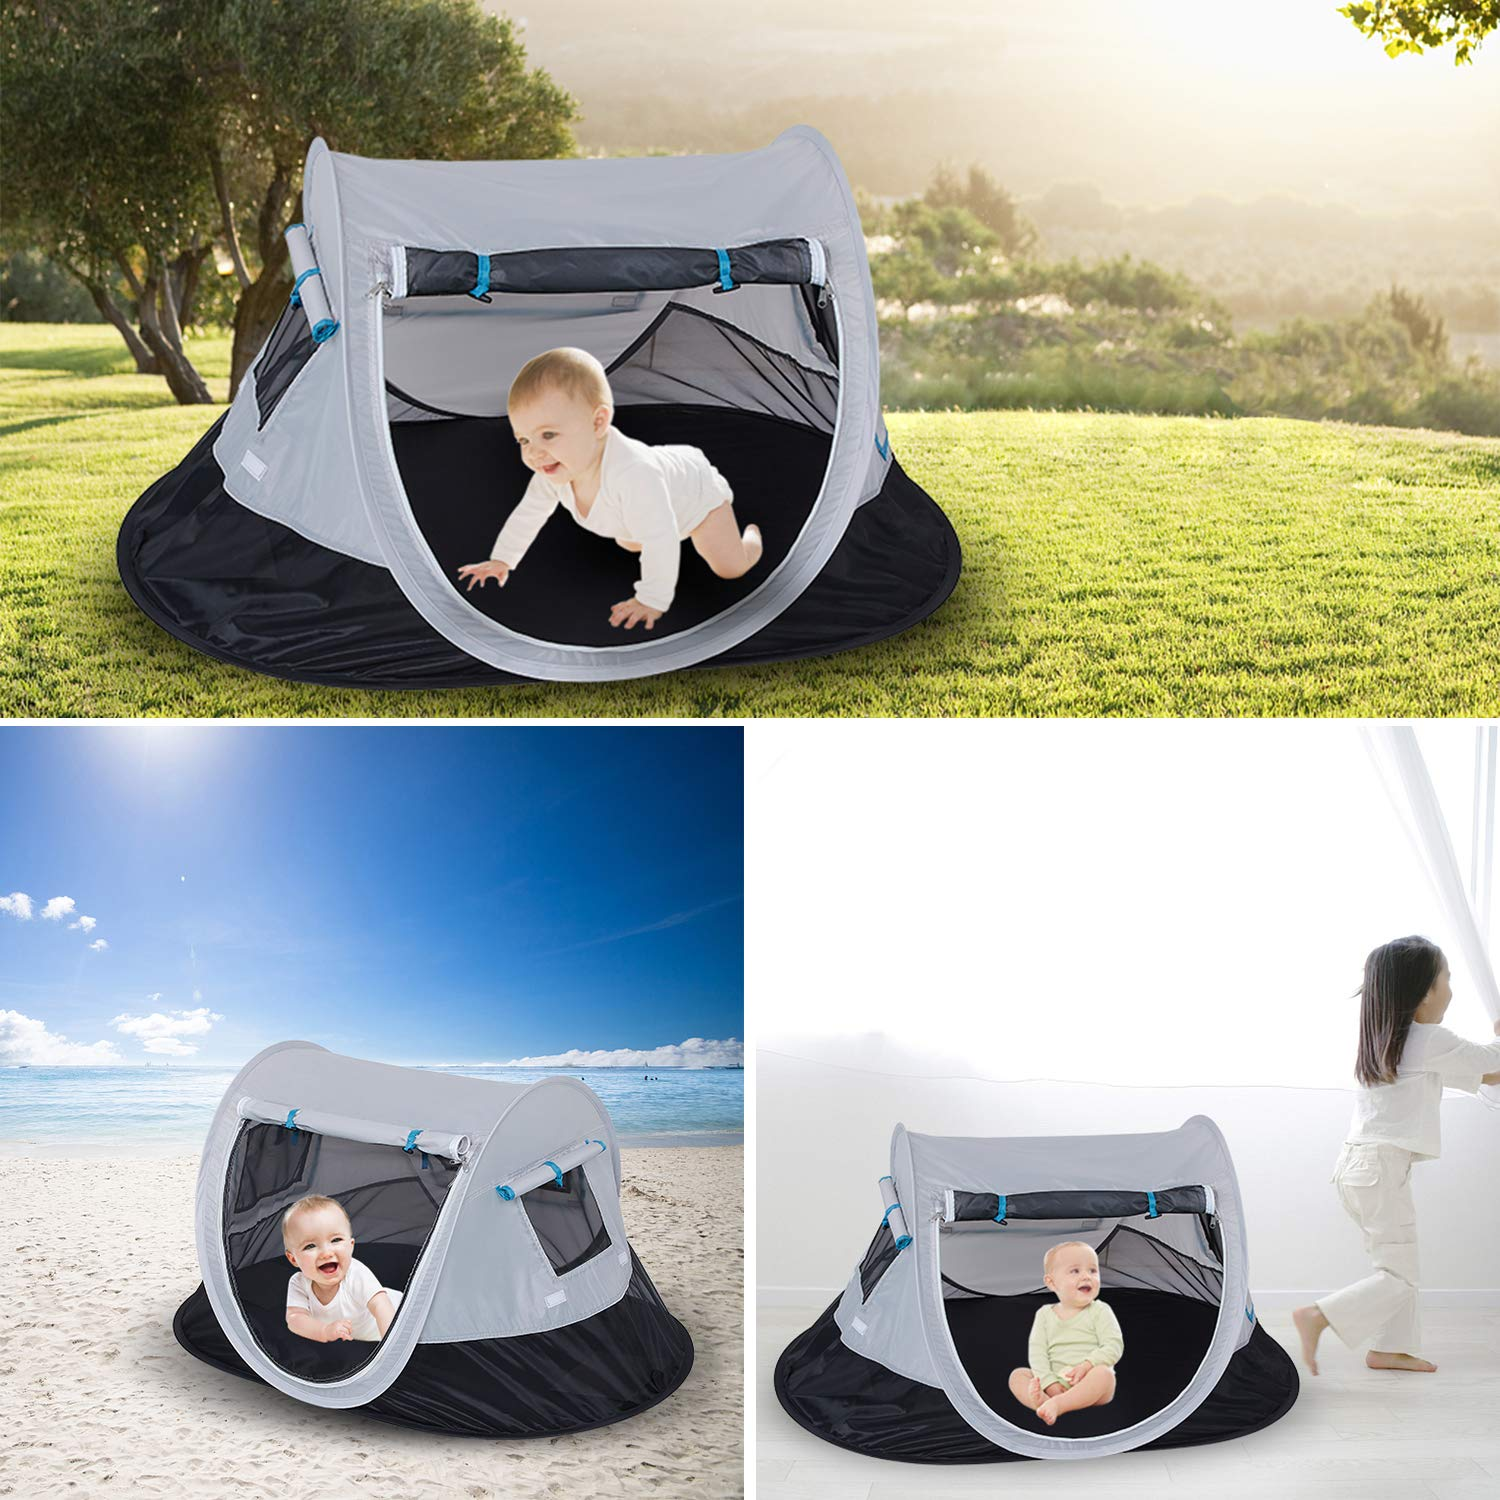 SHDIBA Portable Travel Pop up Baby Tent, Large Beach Sun Shelter Infant Tent, UPF 50+, Baby Sleep Outdoor Camping Mosquito Tent by SHDIBA (Image #7)